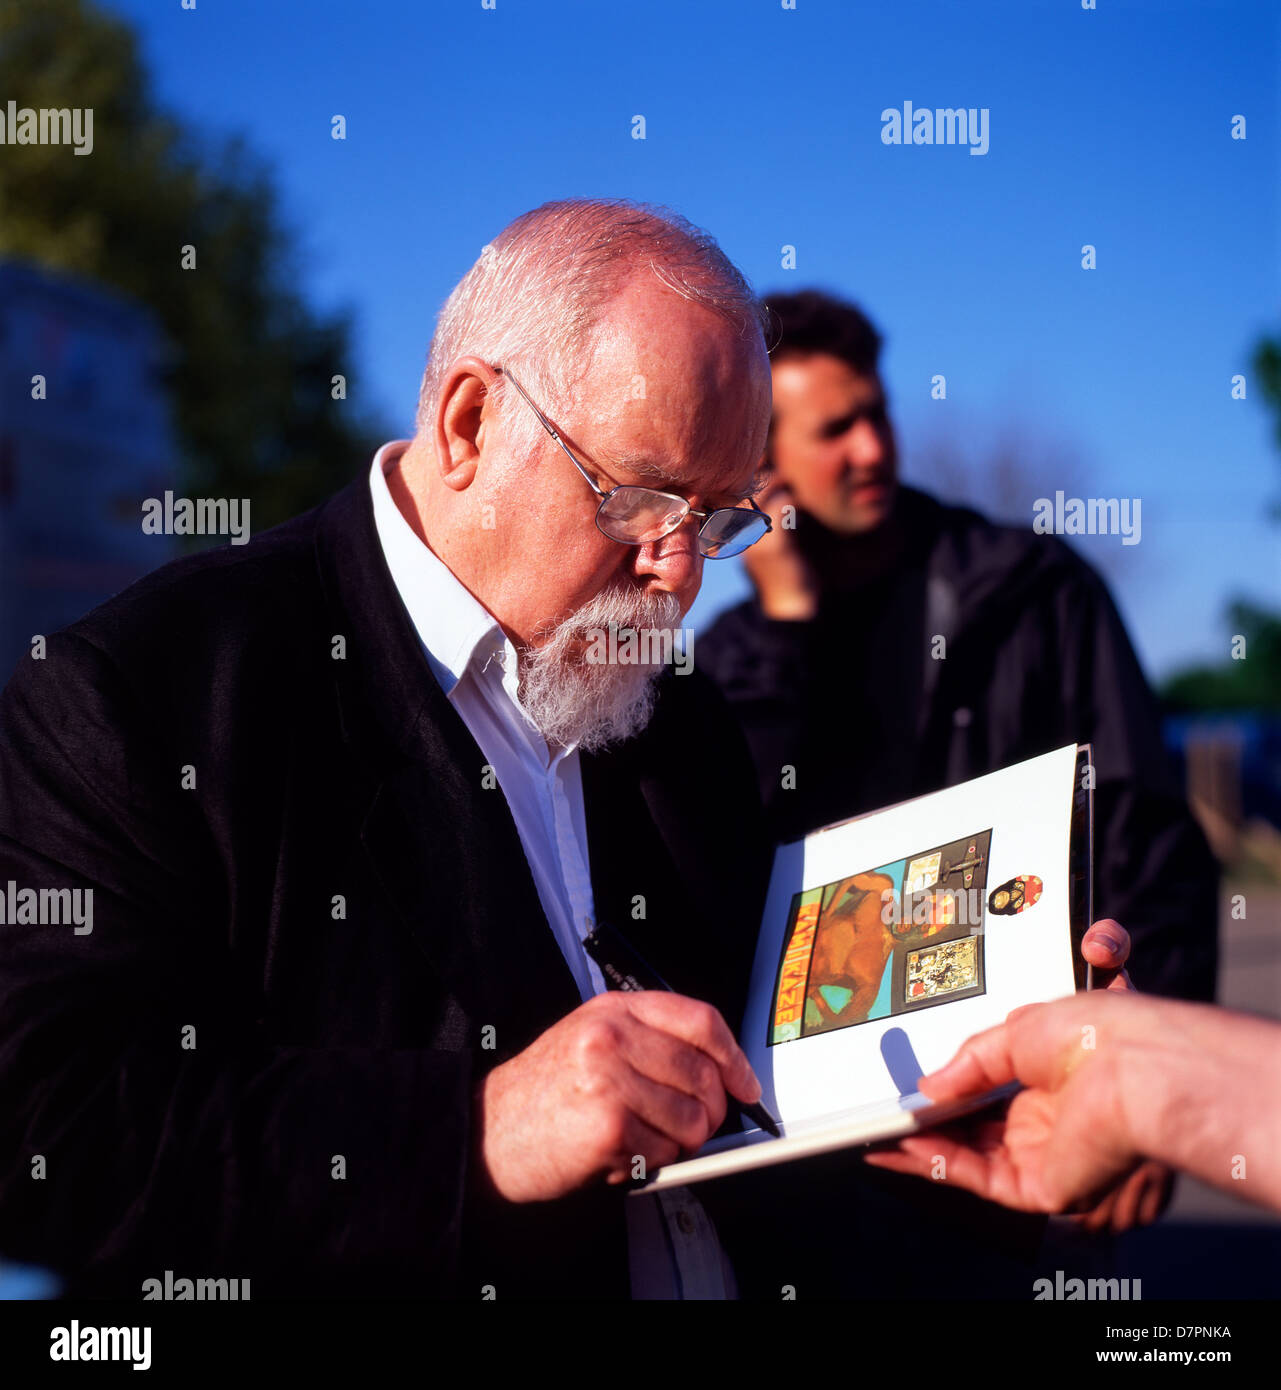 British pop artist Peter Blake signing a book at the Hay Festival, Hay-on-Wye Wales UK KATHY DEWITT Stock Photo